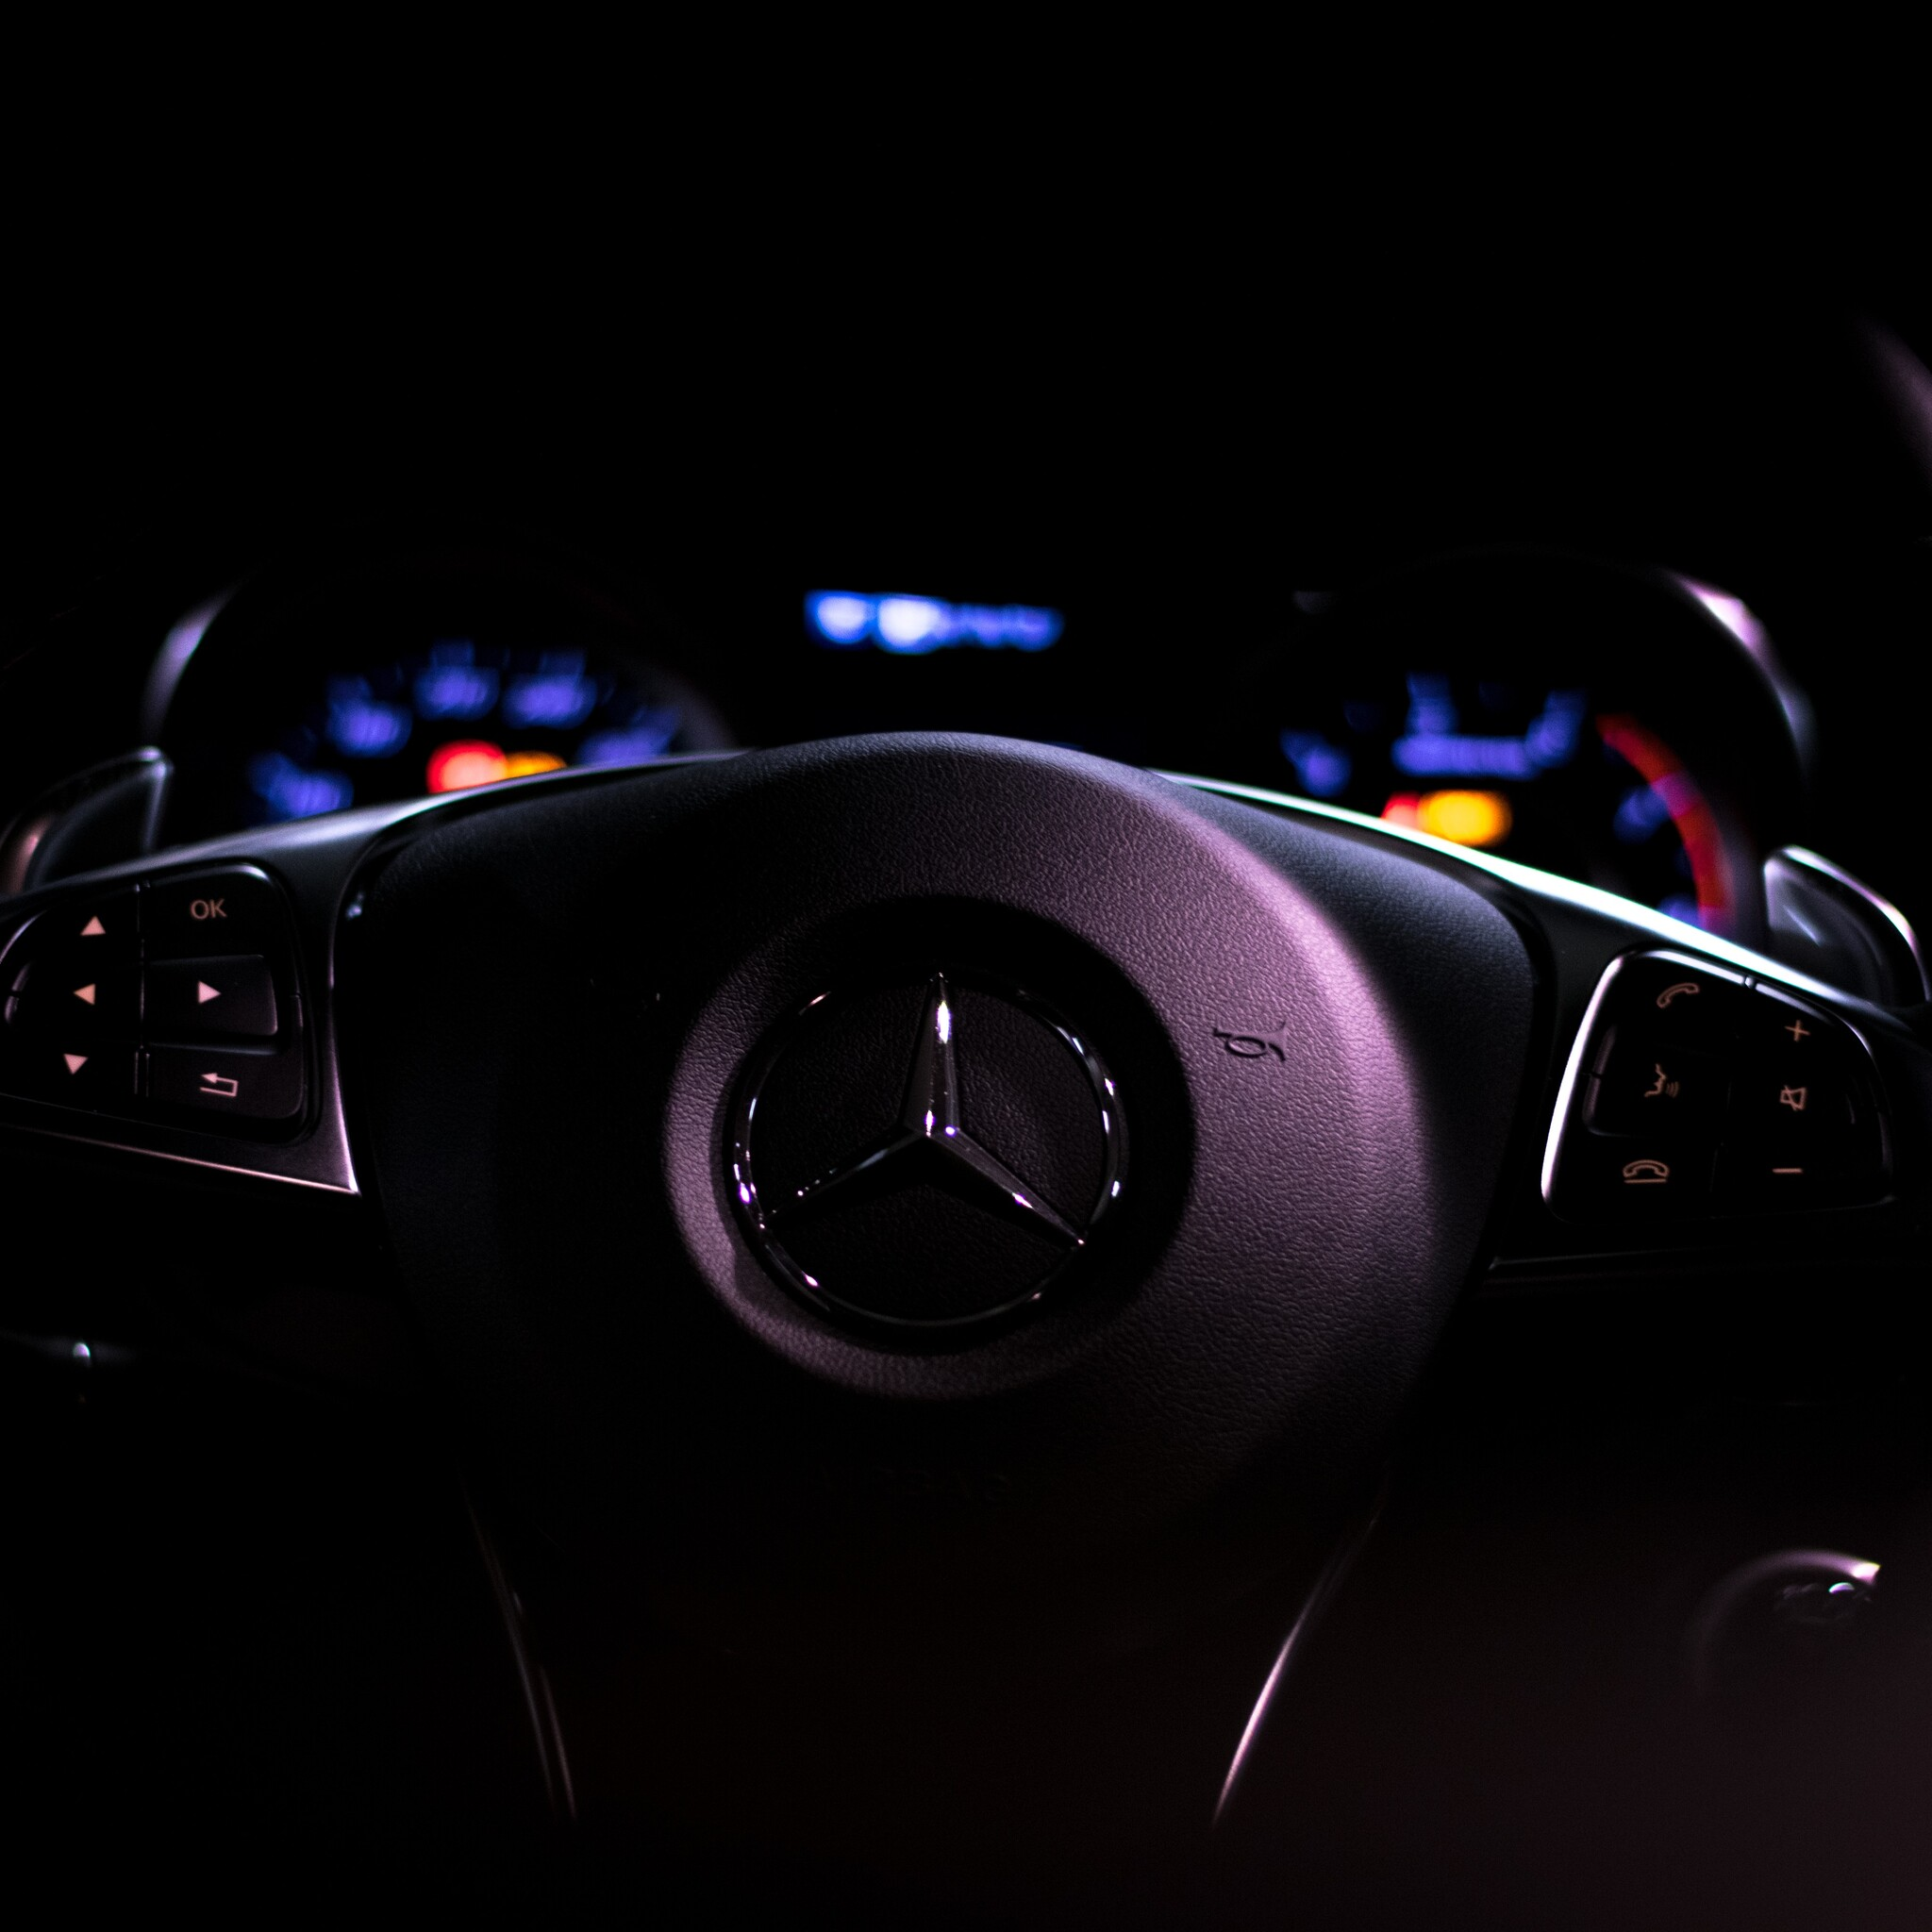 Mercedes Benz Car Wallpaper: 2048x2048 Mercedes Car Steering Full HD Ipad Air HD 4k